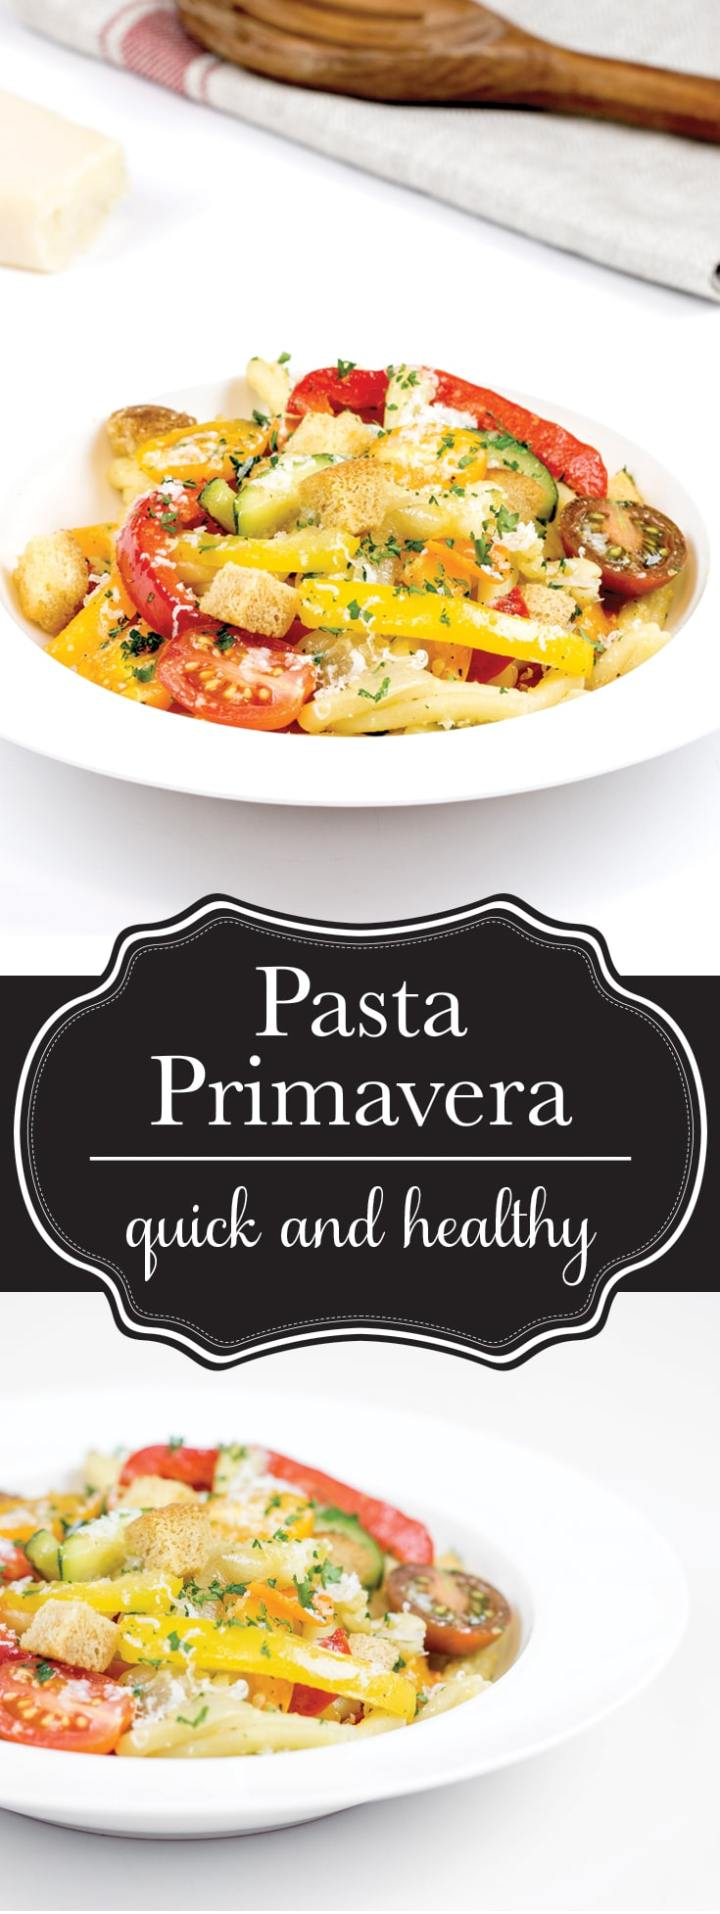 Pasta primavera is one of my favourite pasta dishes, especially in the summer! It's loaded with tons of healthy veggies that I can get locally and in season, and it comes together SO FAST! Seriously, who doesn't love a dinner that's start to finish in less than 30 minutes.